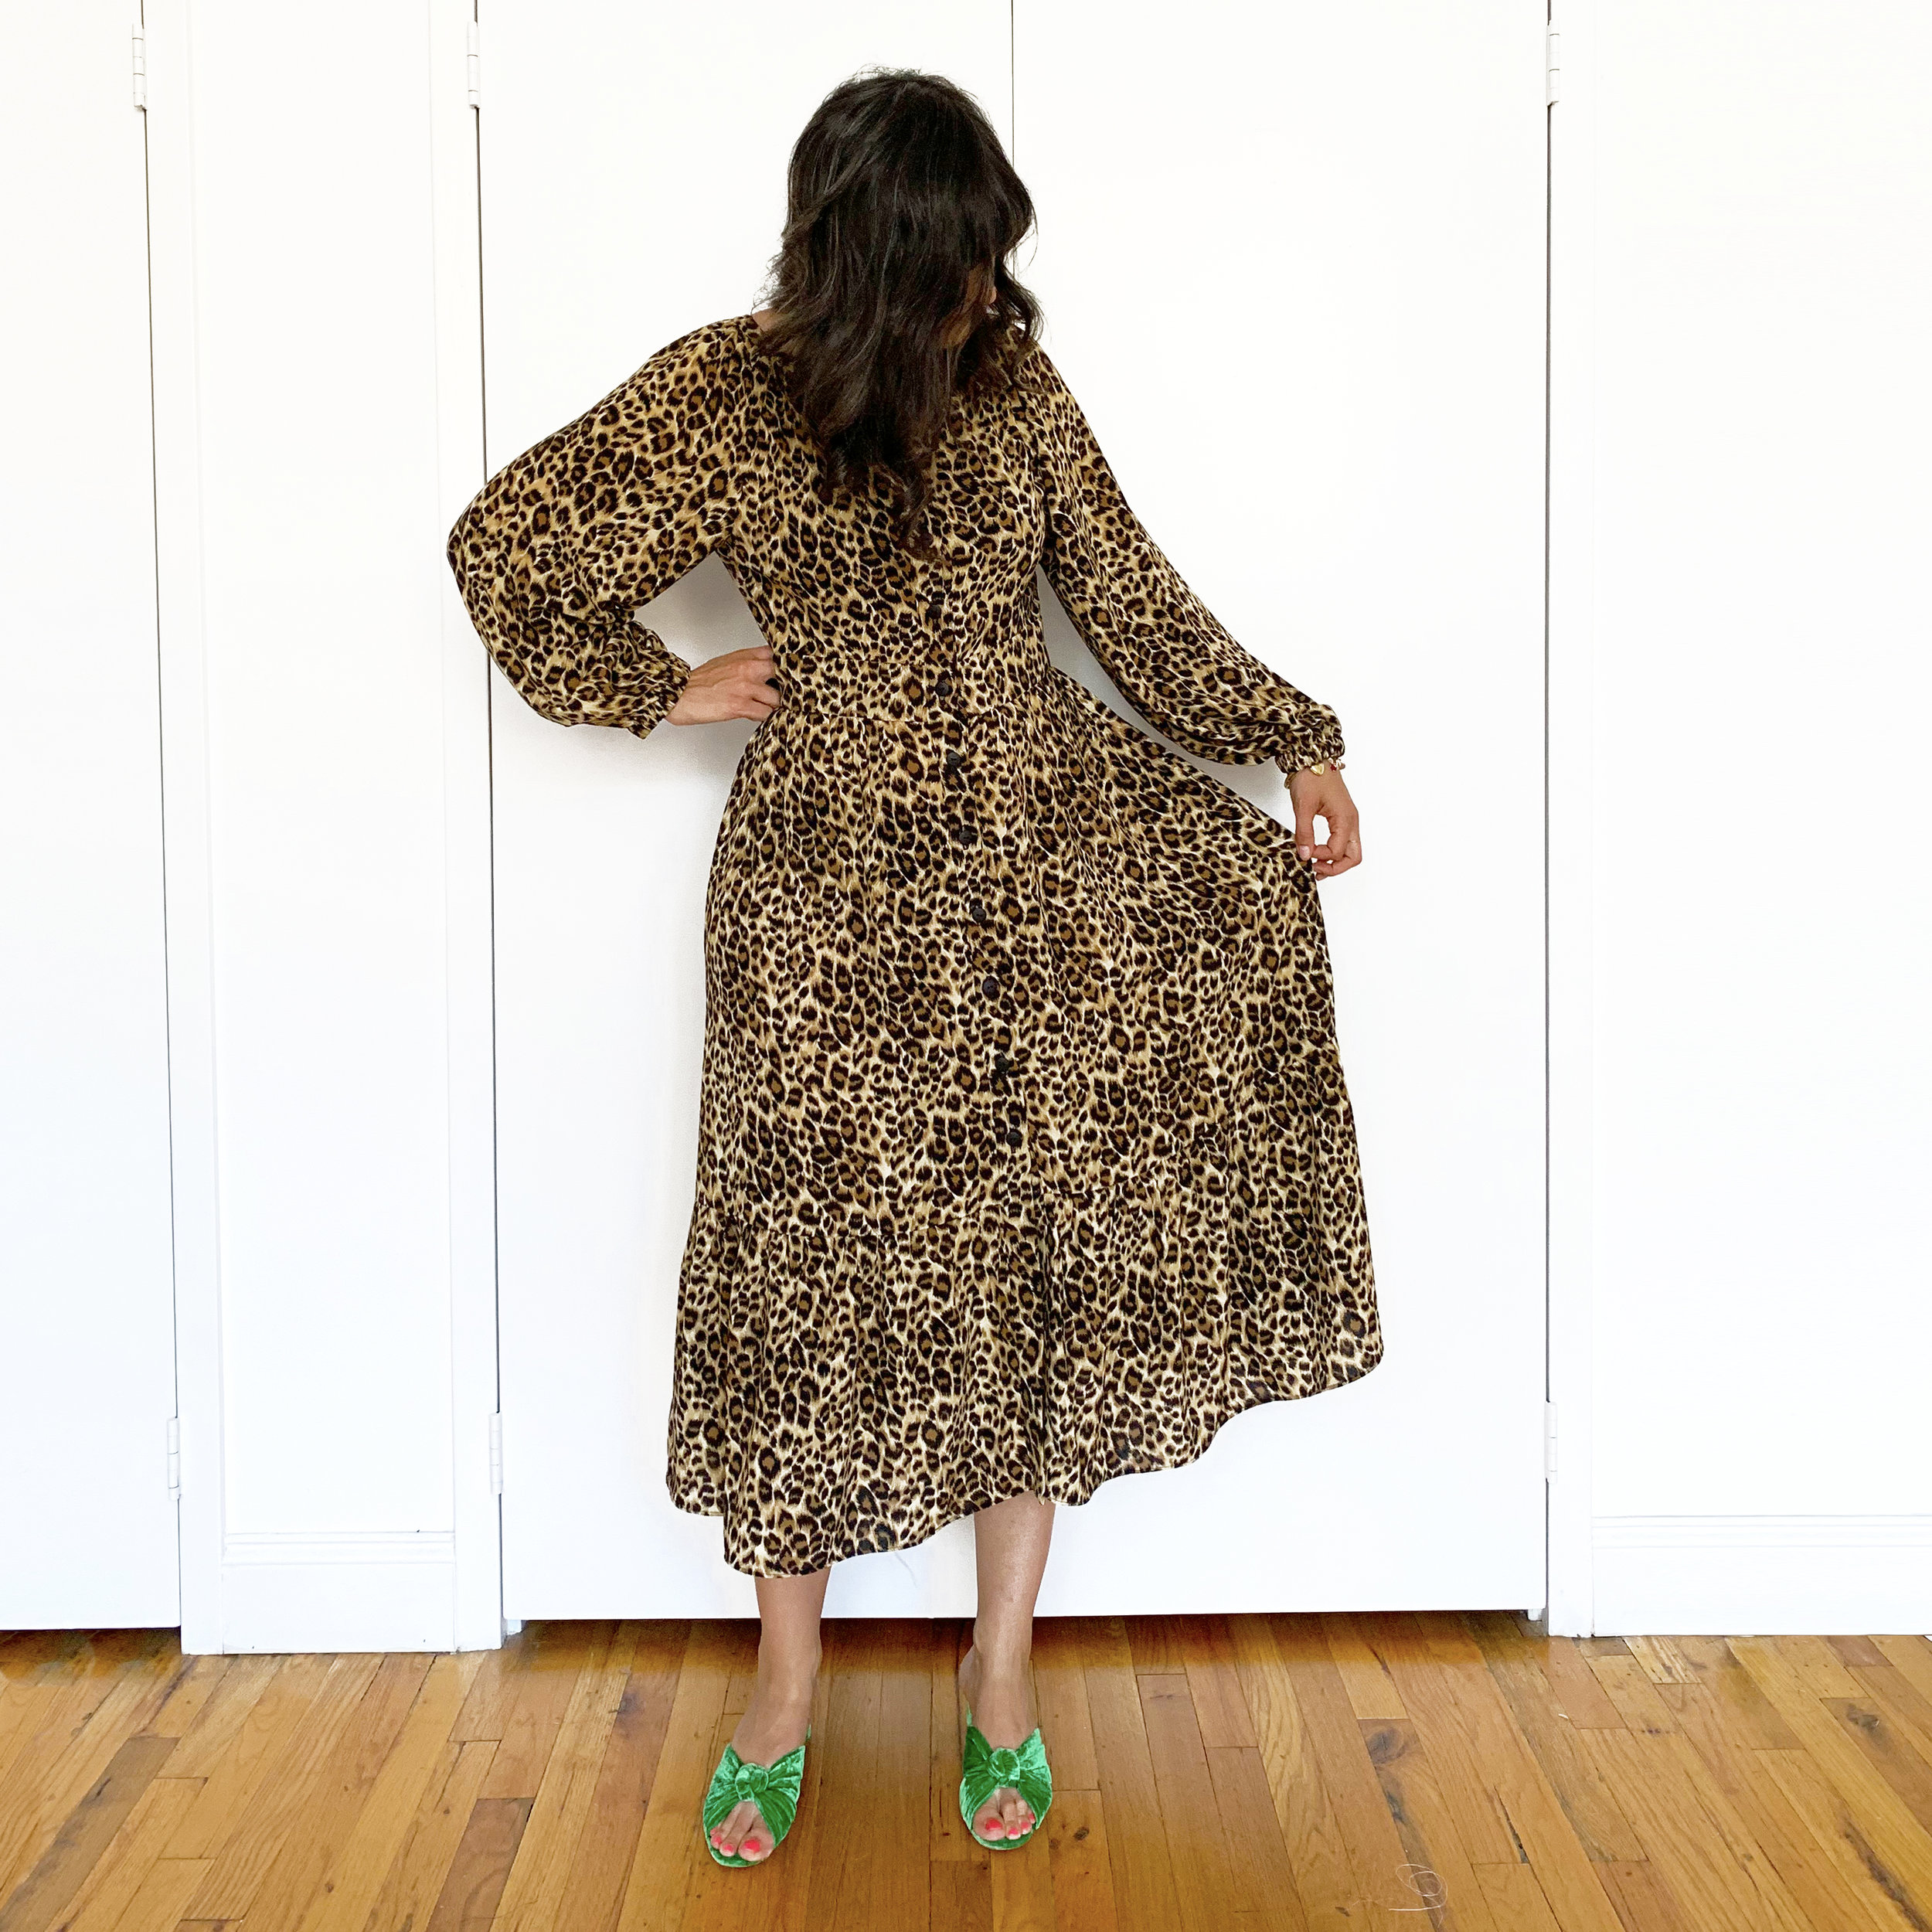 I like the dress without the belt, but I think wearing one helps break up the busy print.